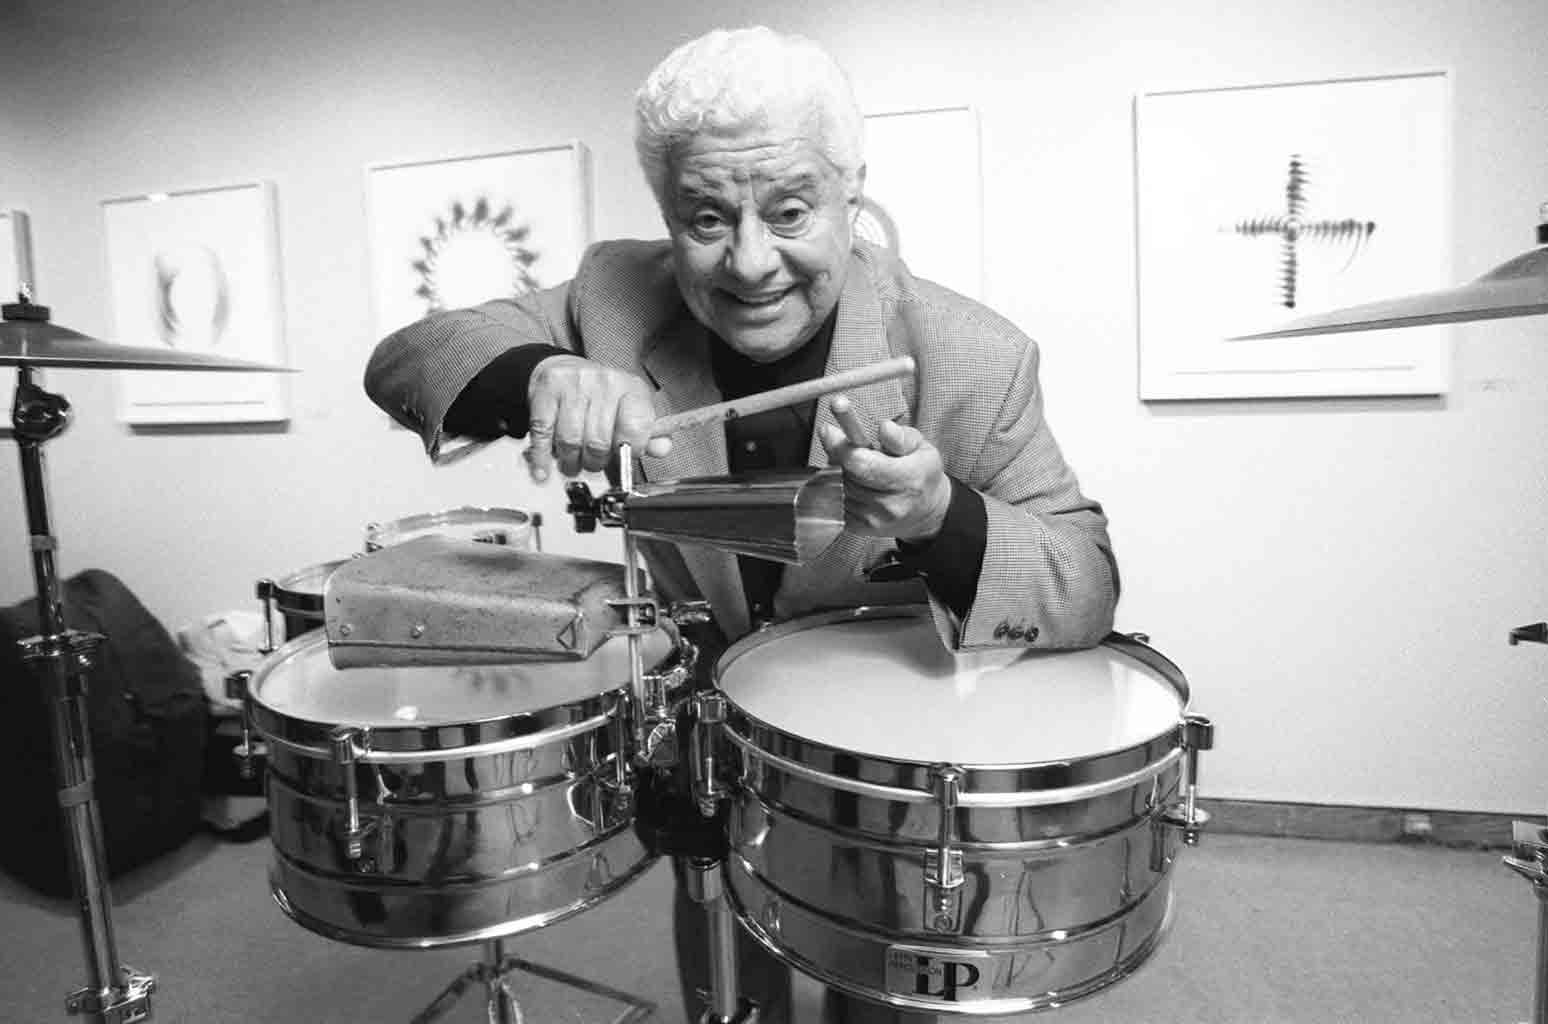 Tito Puente photographed on April 21, 1997 as he plays at a fund raising jazz benefit for St. Peter's Church in New York.